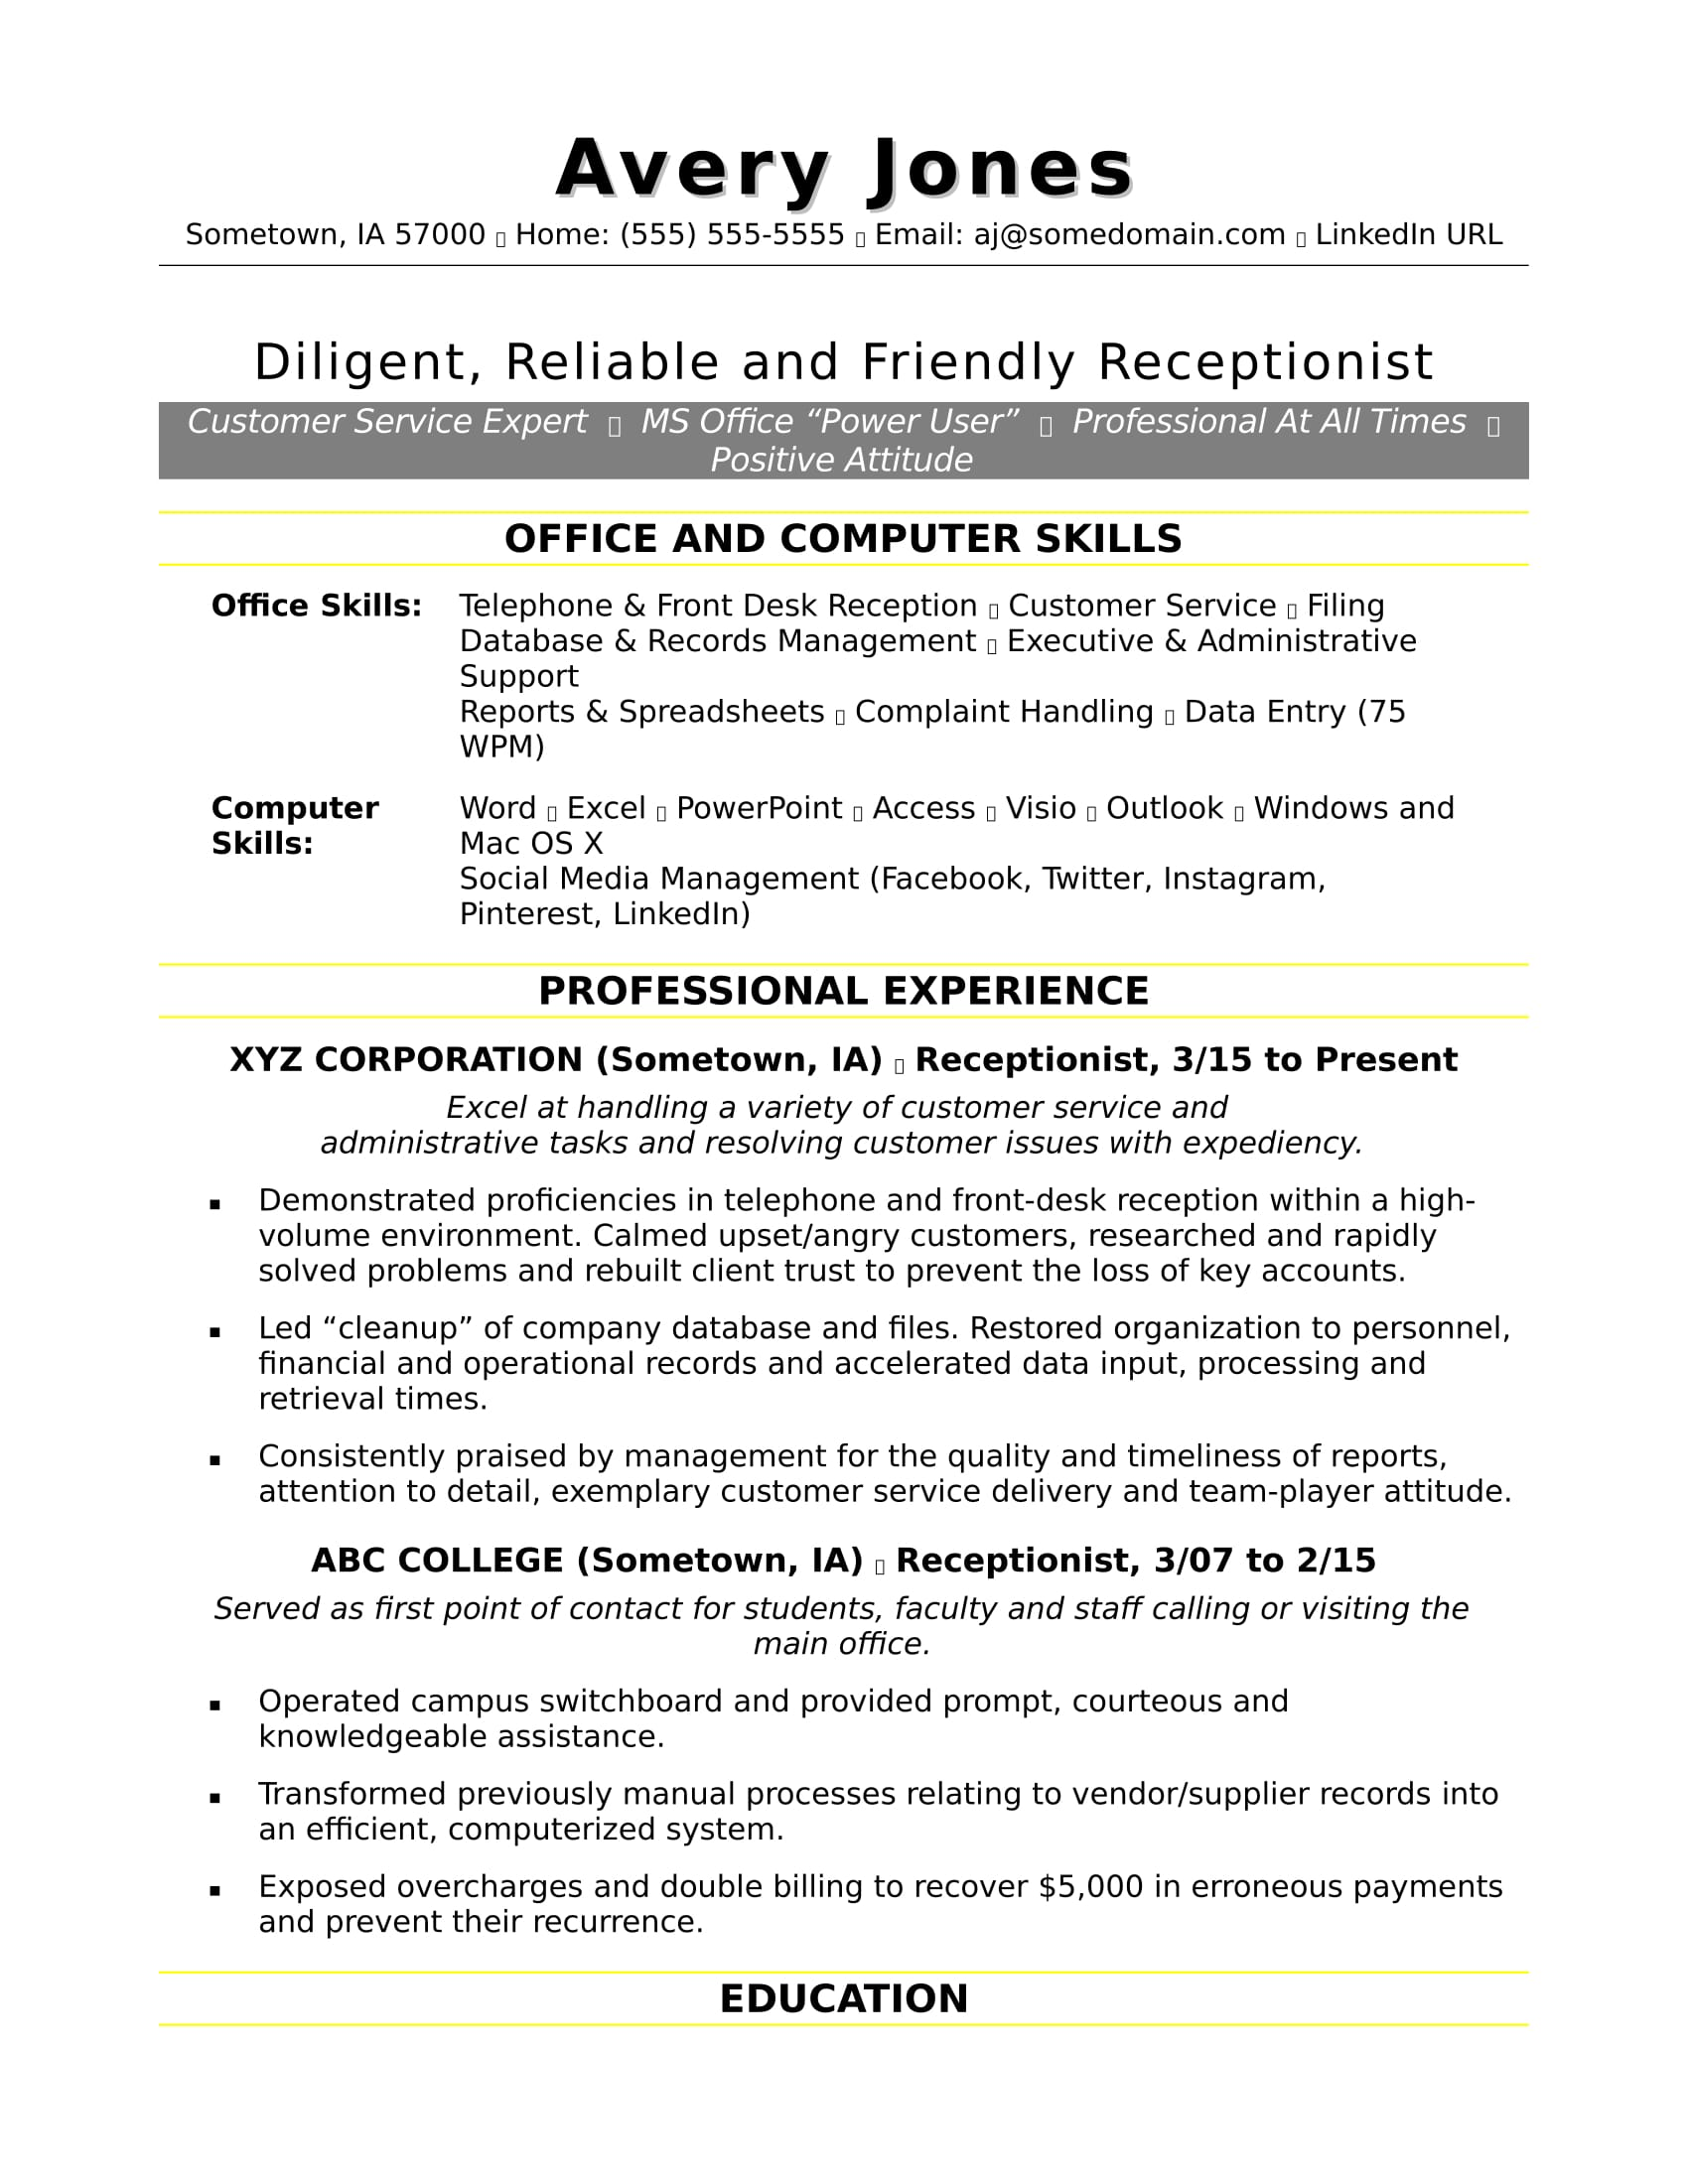 receptionist resume sample monster format for experienced customer service executive Resume Resume Format For Experienced Customer Service Executive